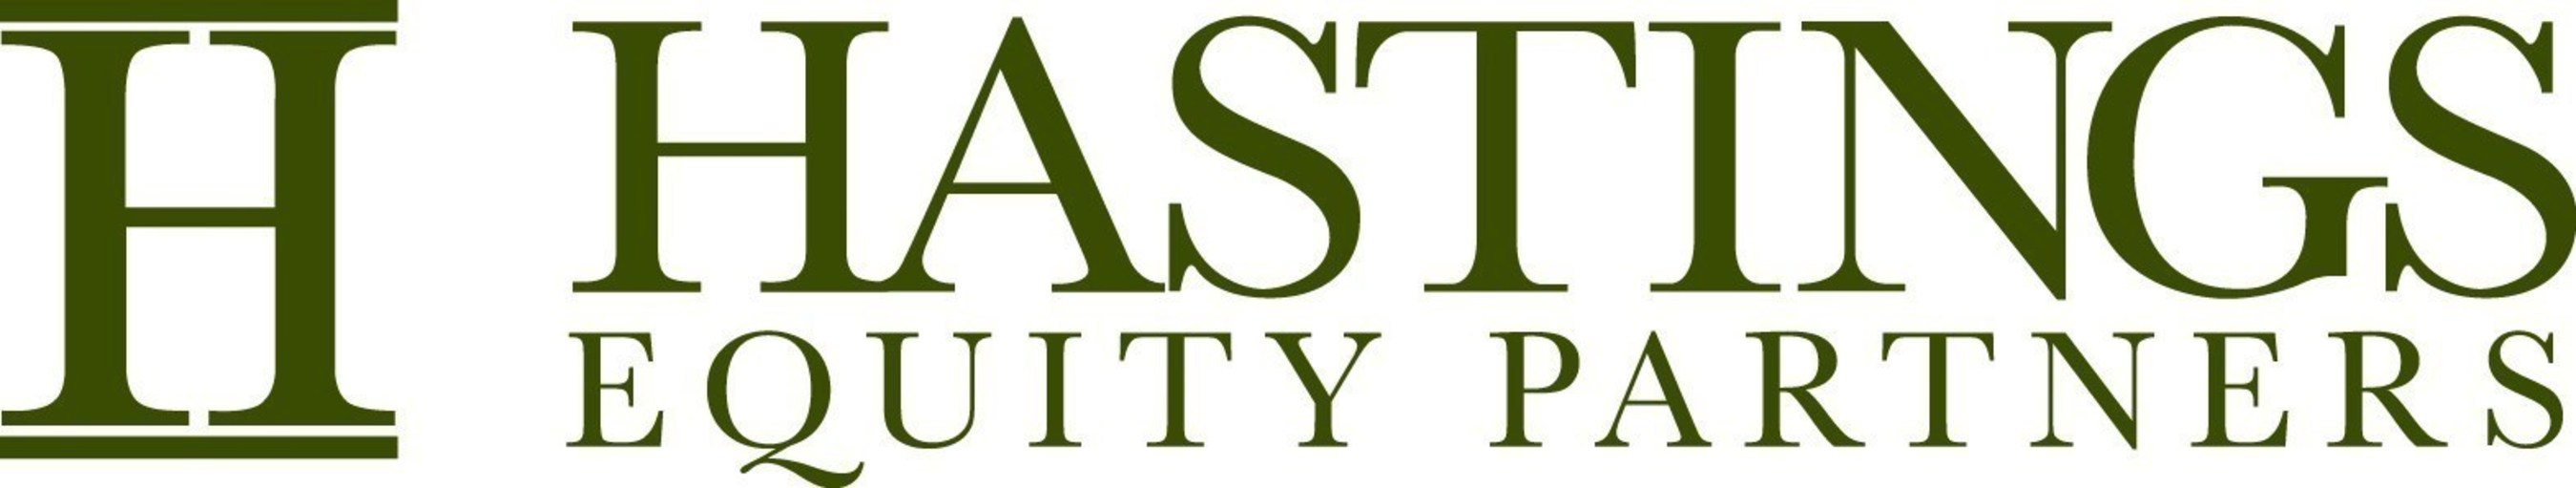 Hastings Announces Acquisition of IMPACT! Chemical Technologies, Inc.